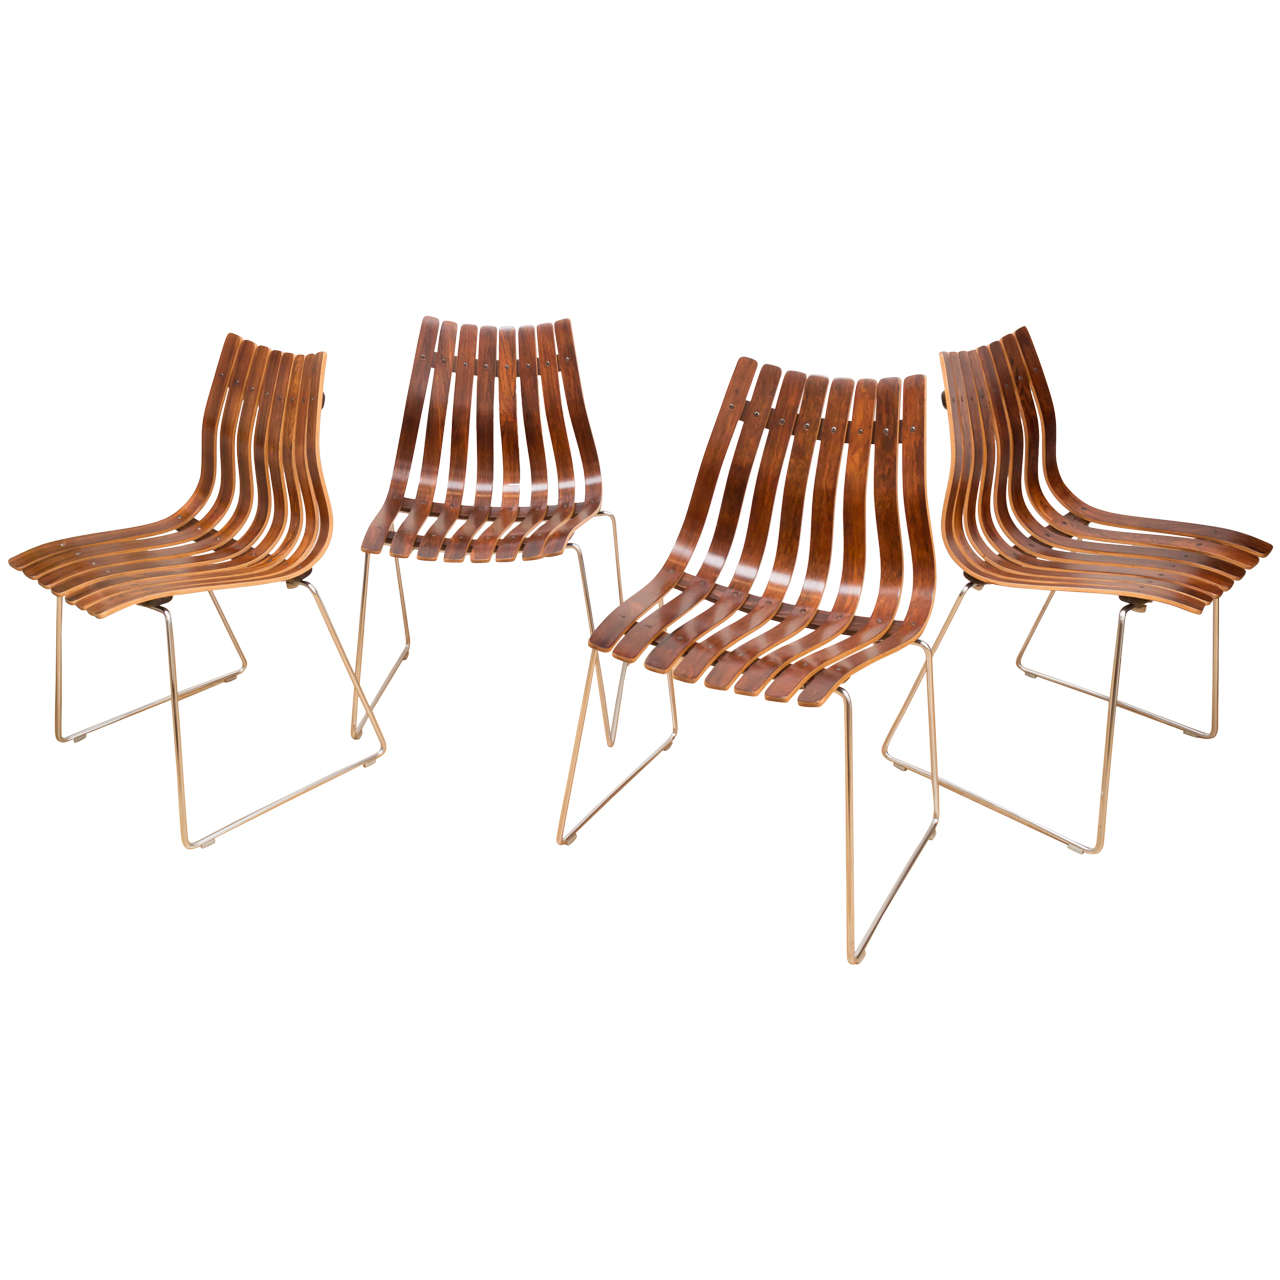 Hans Brattrud Dining Room Chairs 7 For Sale at 1stdibs